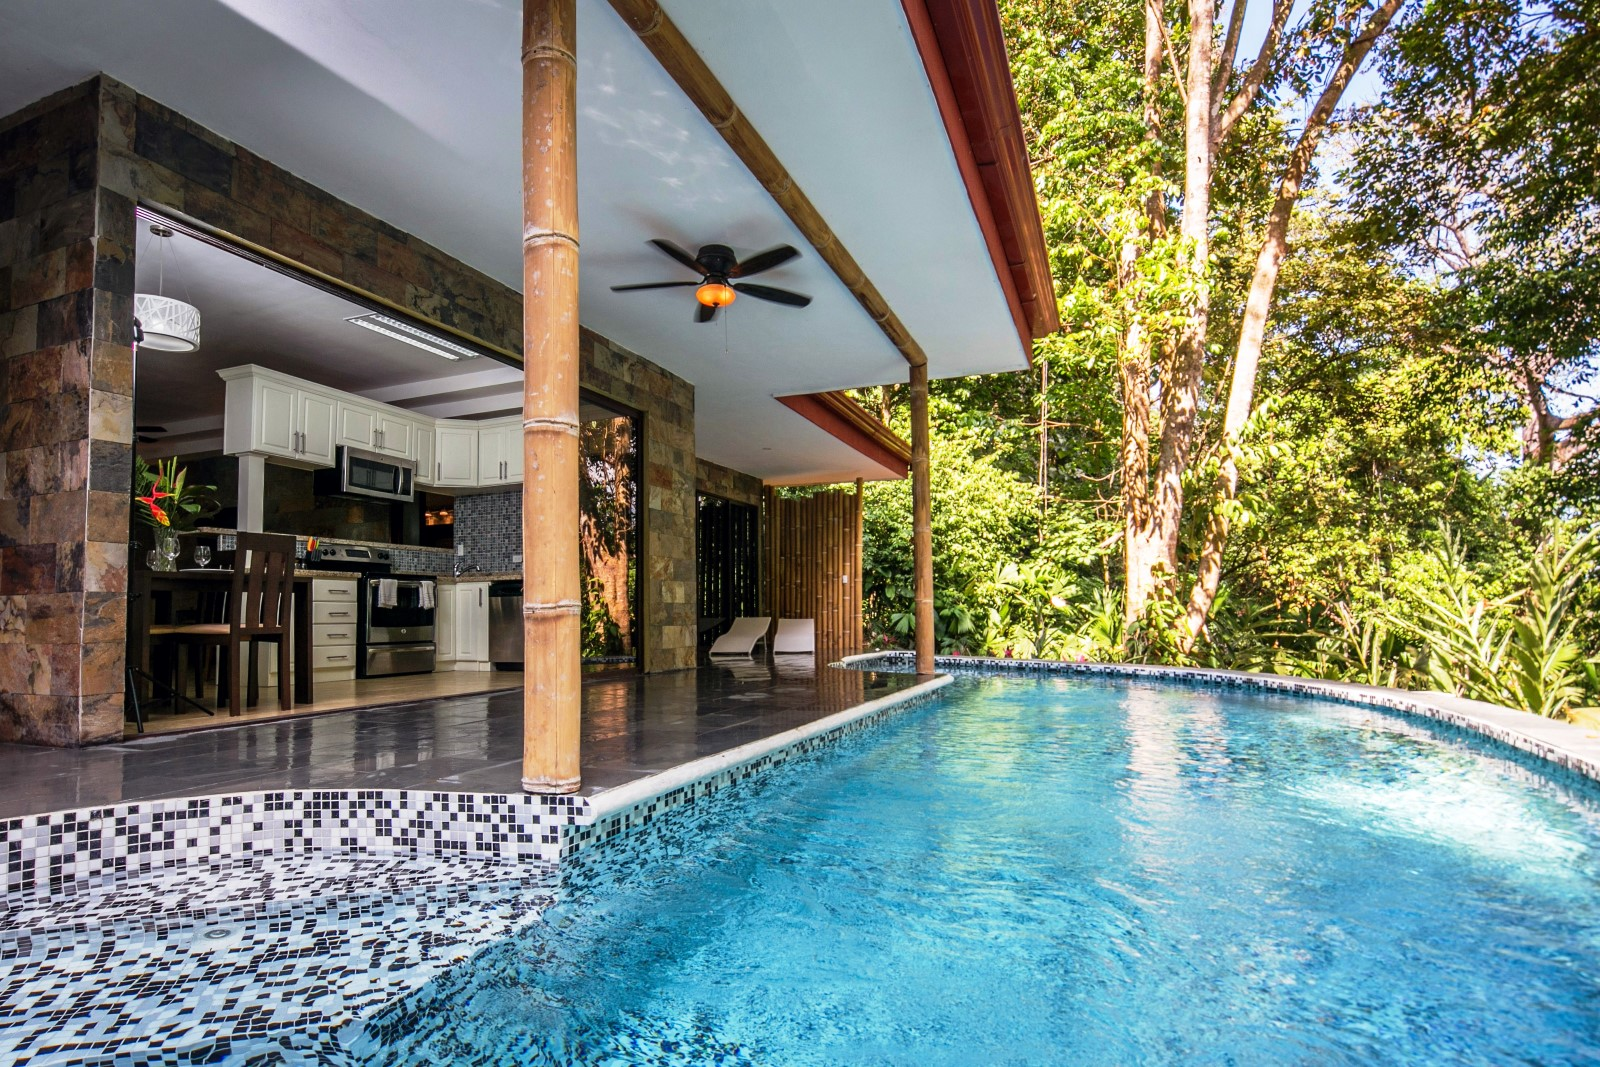 Manuel Antonio Costa Rica Real Estate by owner